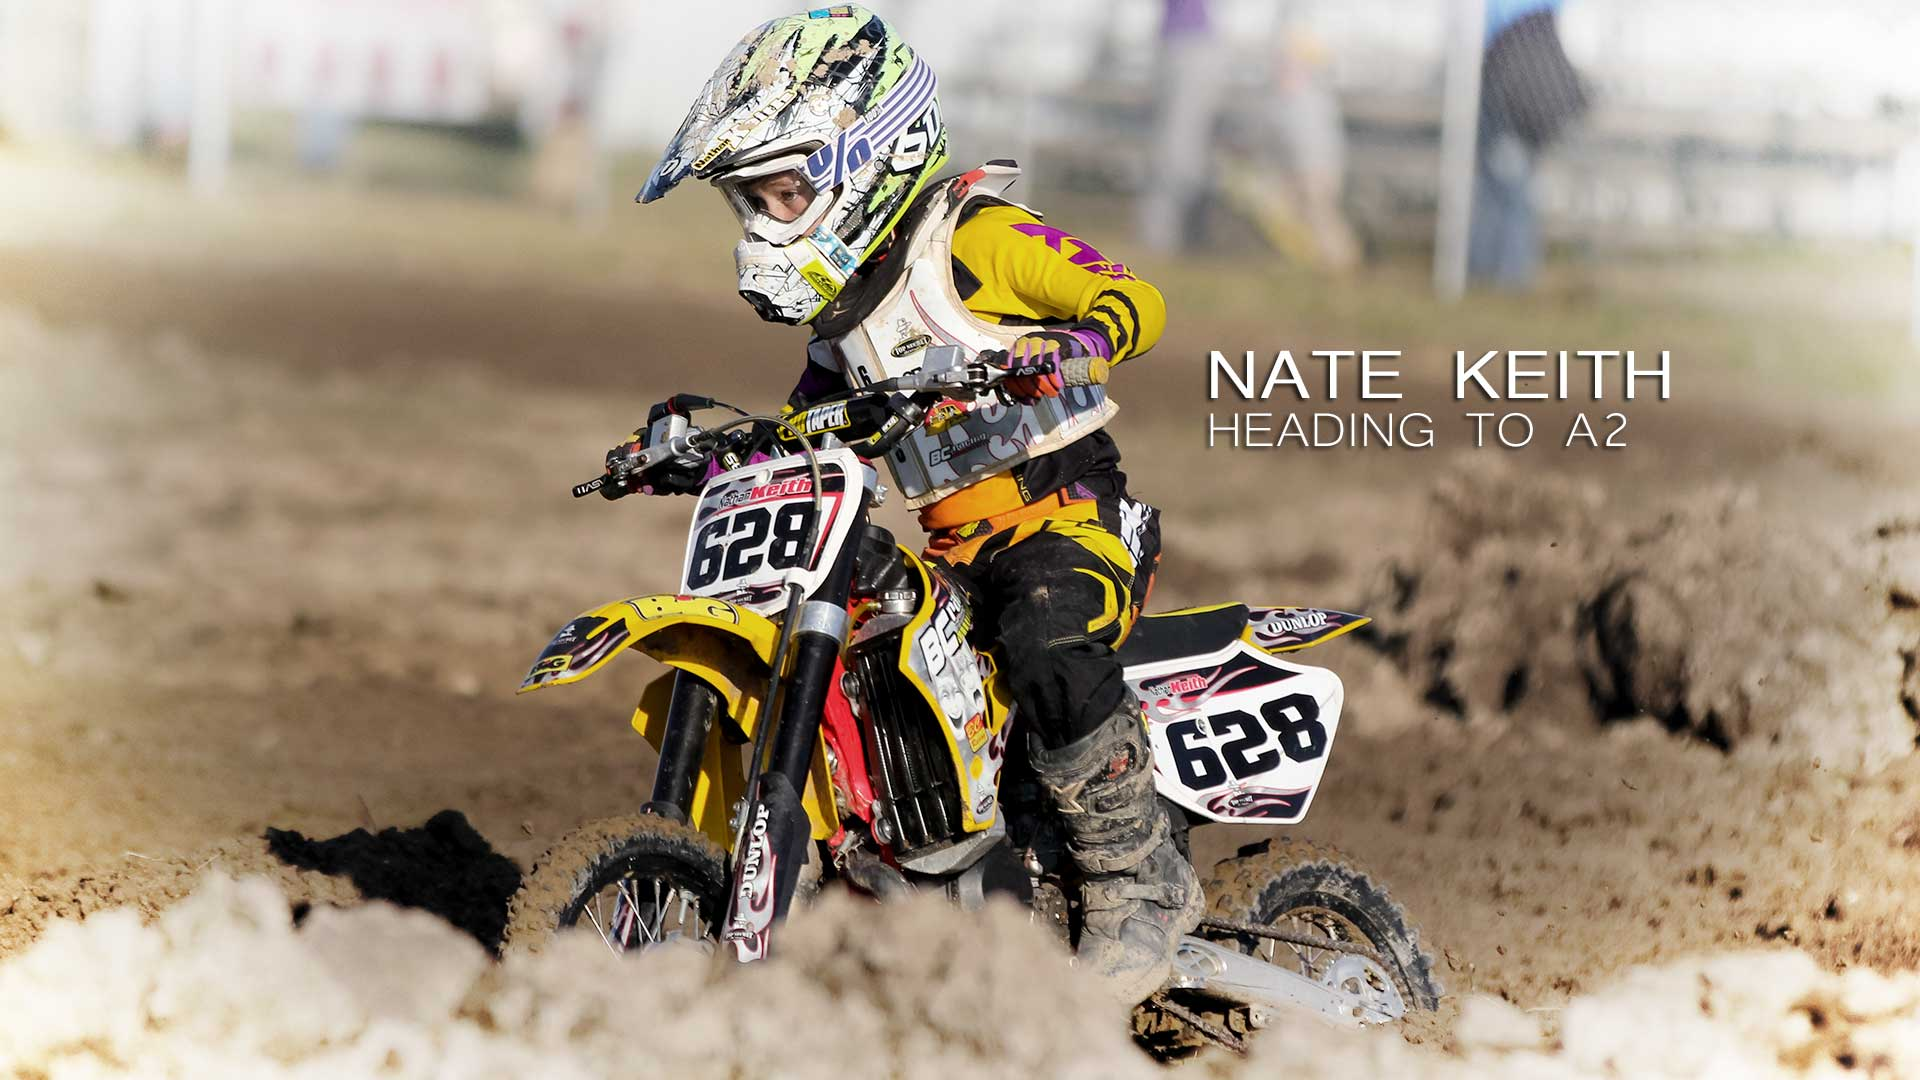 Moto Cross-Examine: Nate Keith Heading to A2